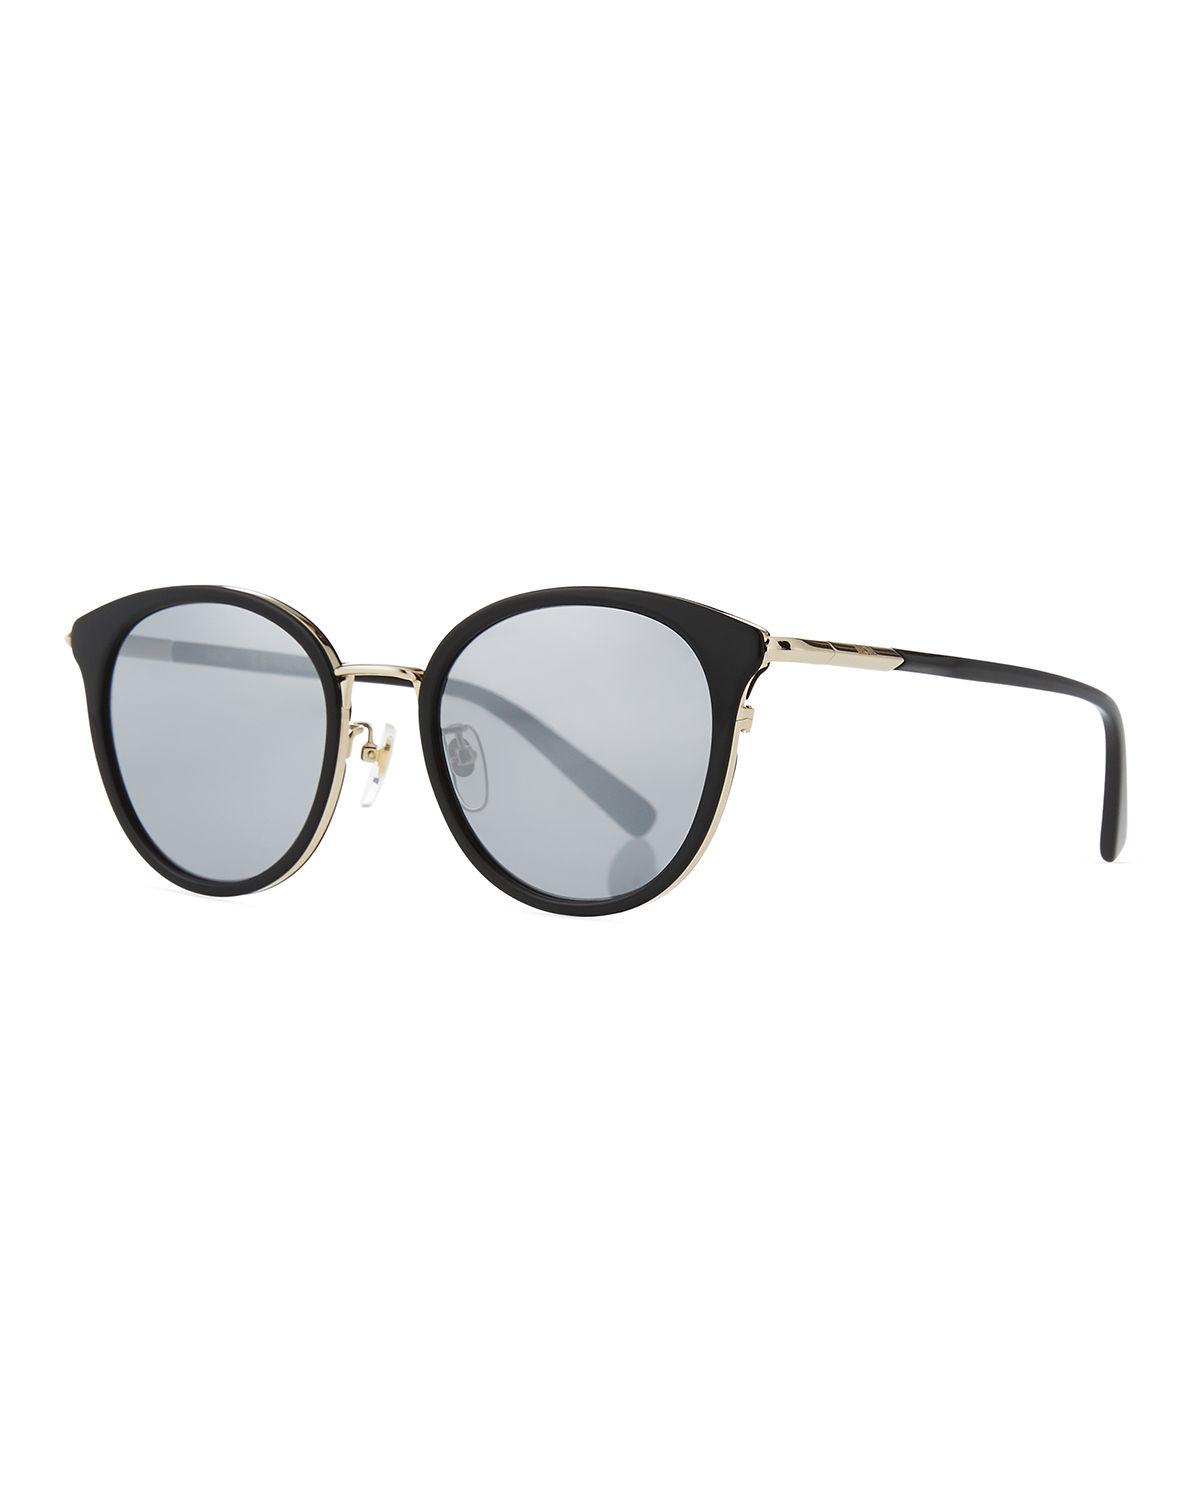 e6cead53abc2 MCM. Women s Black Metal   Acetate Cat-eye Sunglasses.  305 From Neiman  Marcus ...